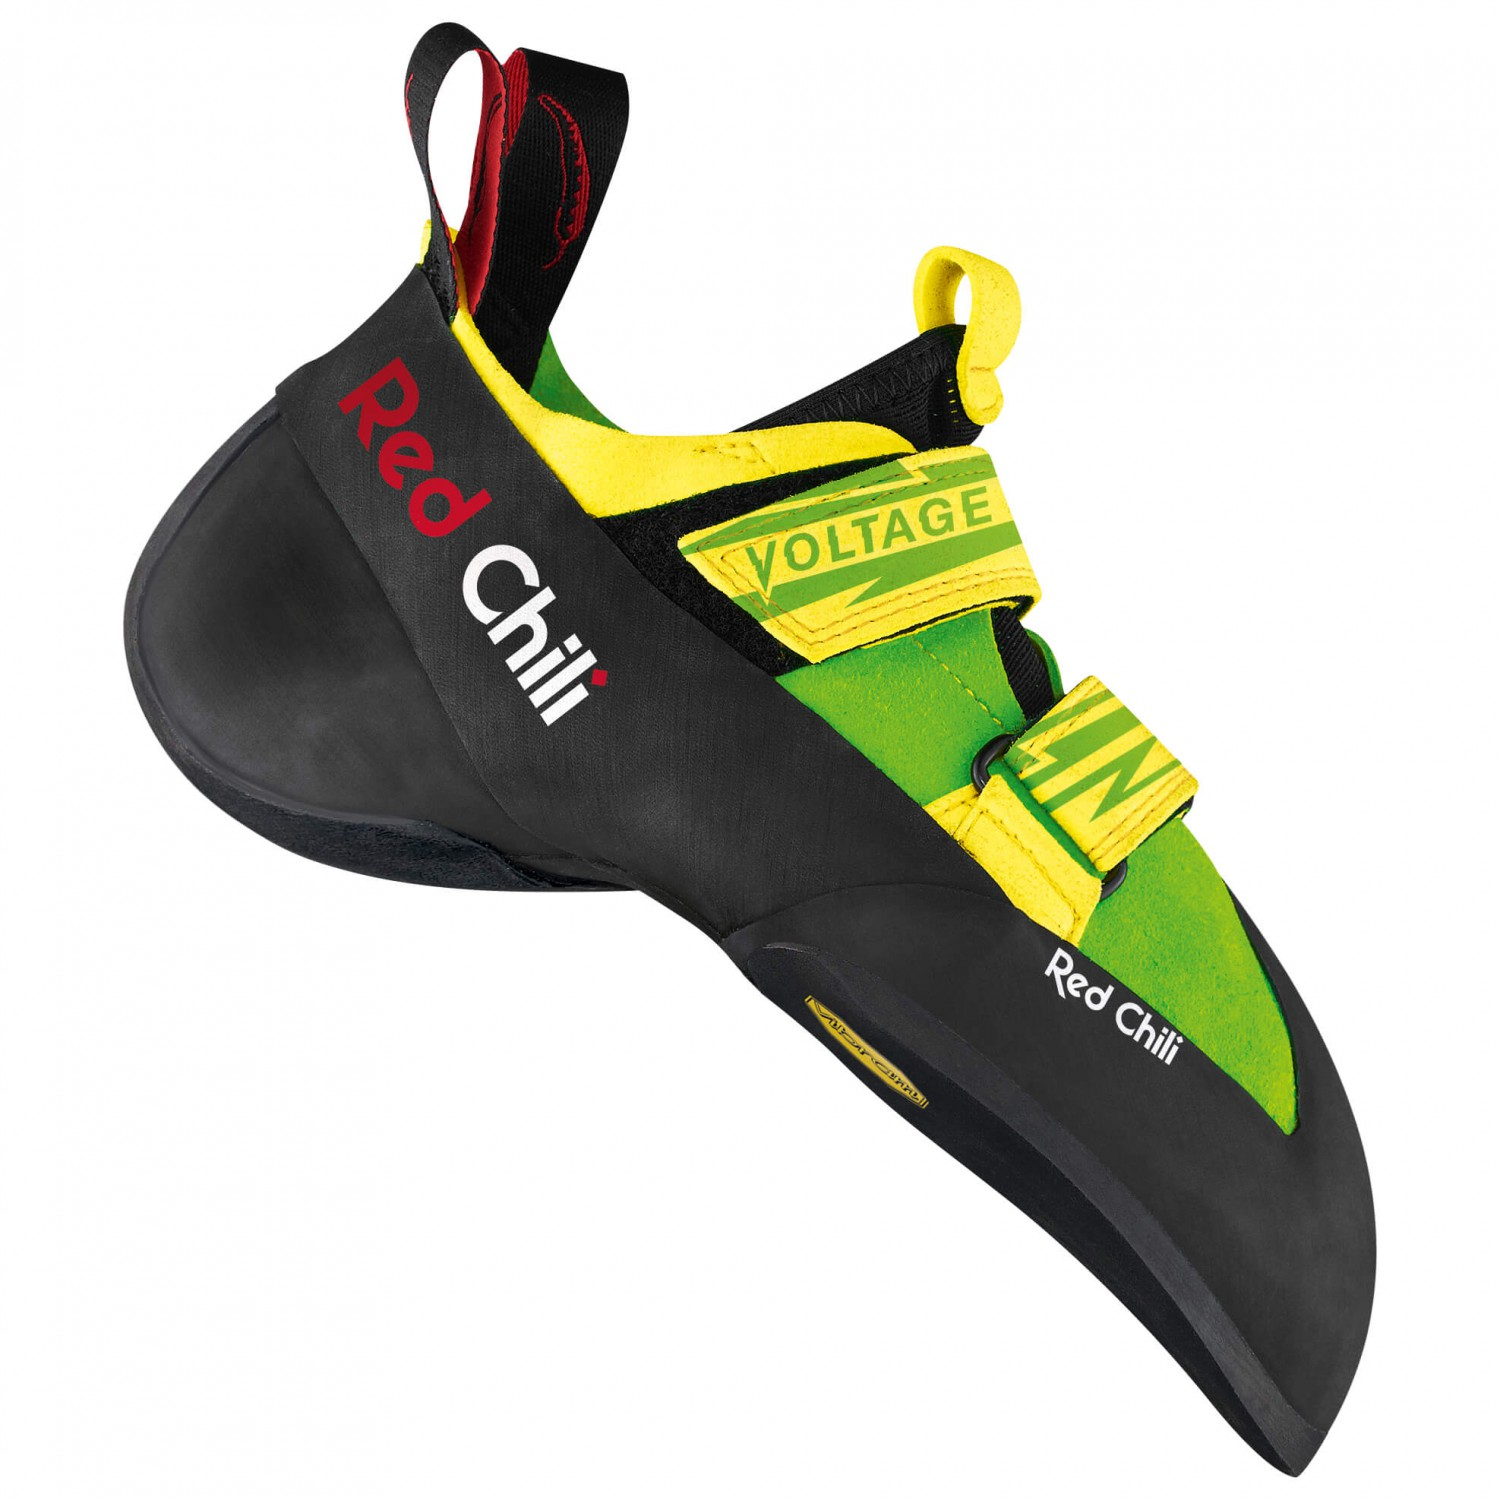 red chili climbing shoes size guide